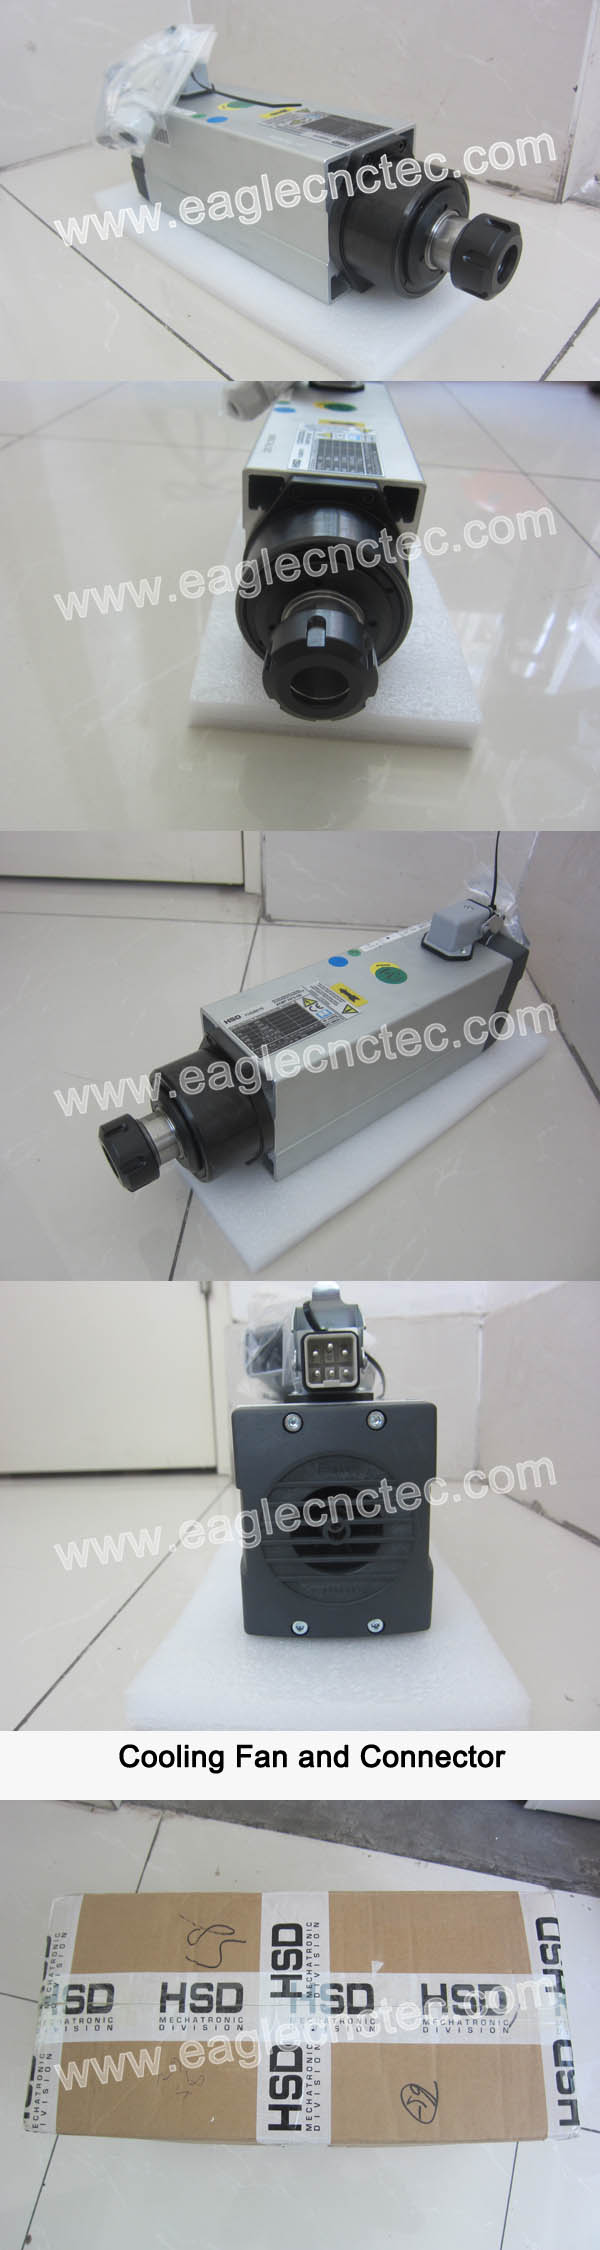 Hsd Spindle Price Italy Spindle Motor For Sale Eagletec